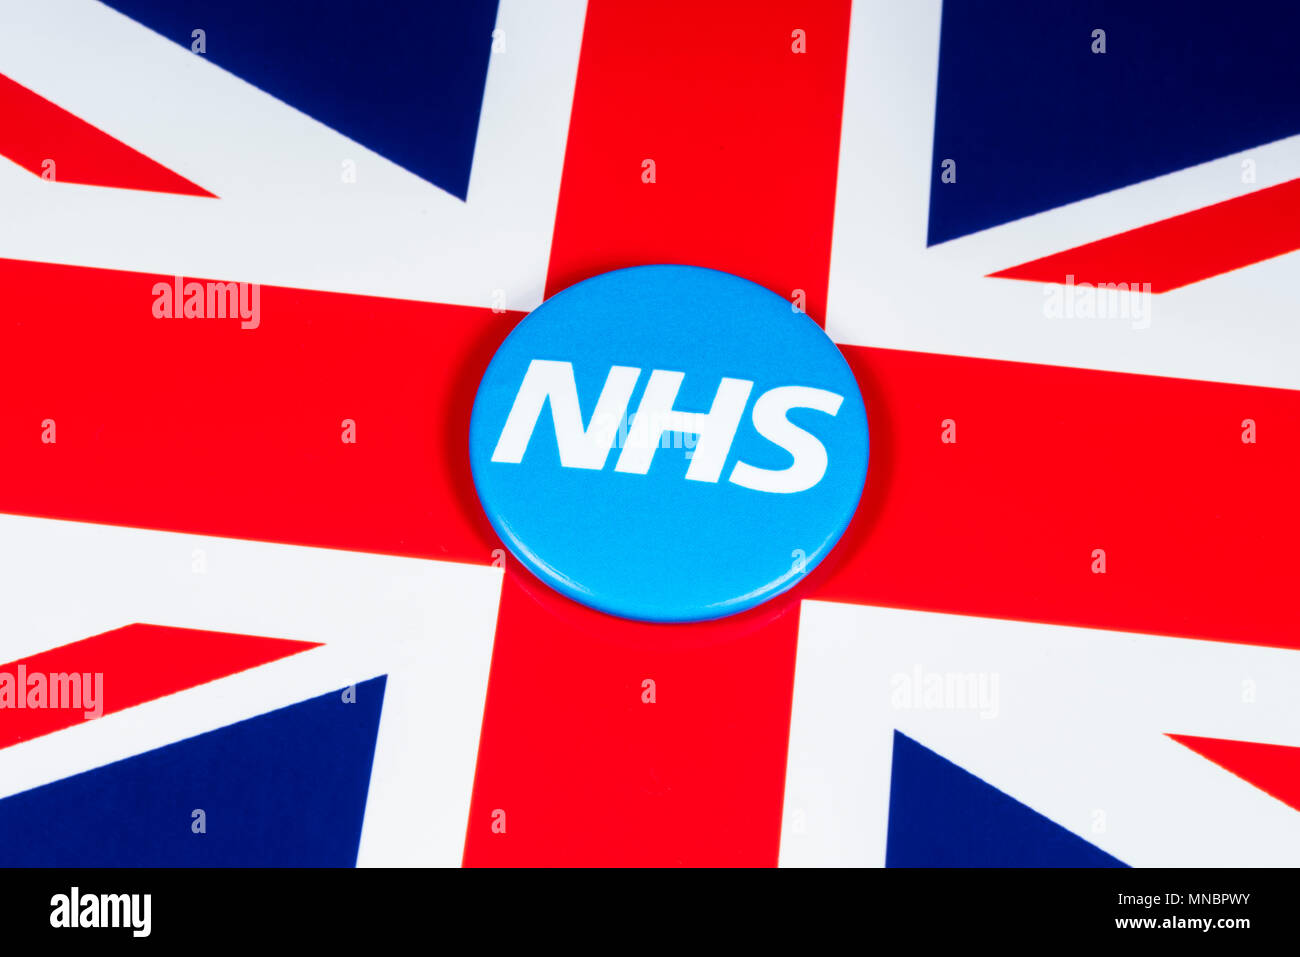 LONDON, UK - APRIL 27TH 2018: The National Health Service symbol over the UK flag, on 27th April 2018.  The NHS was established in 1948 as one of the  Stock Photo